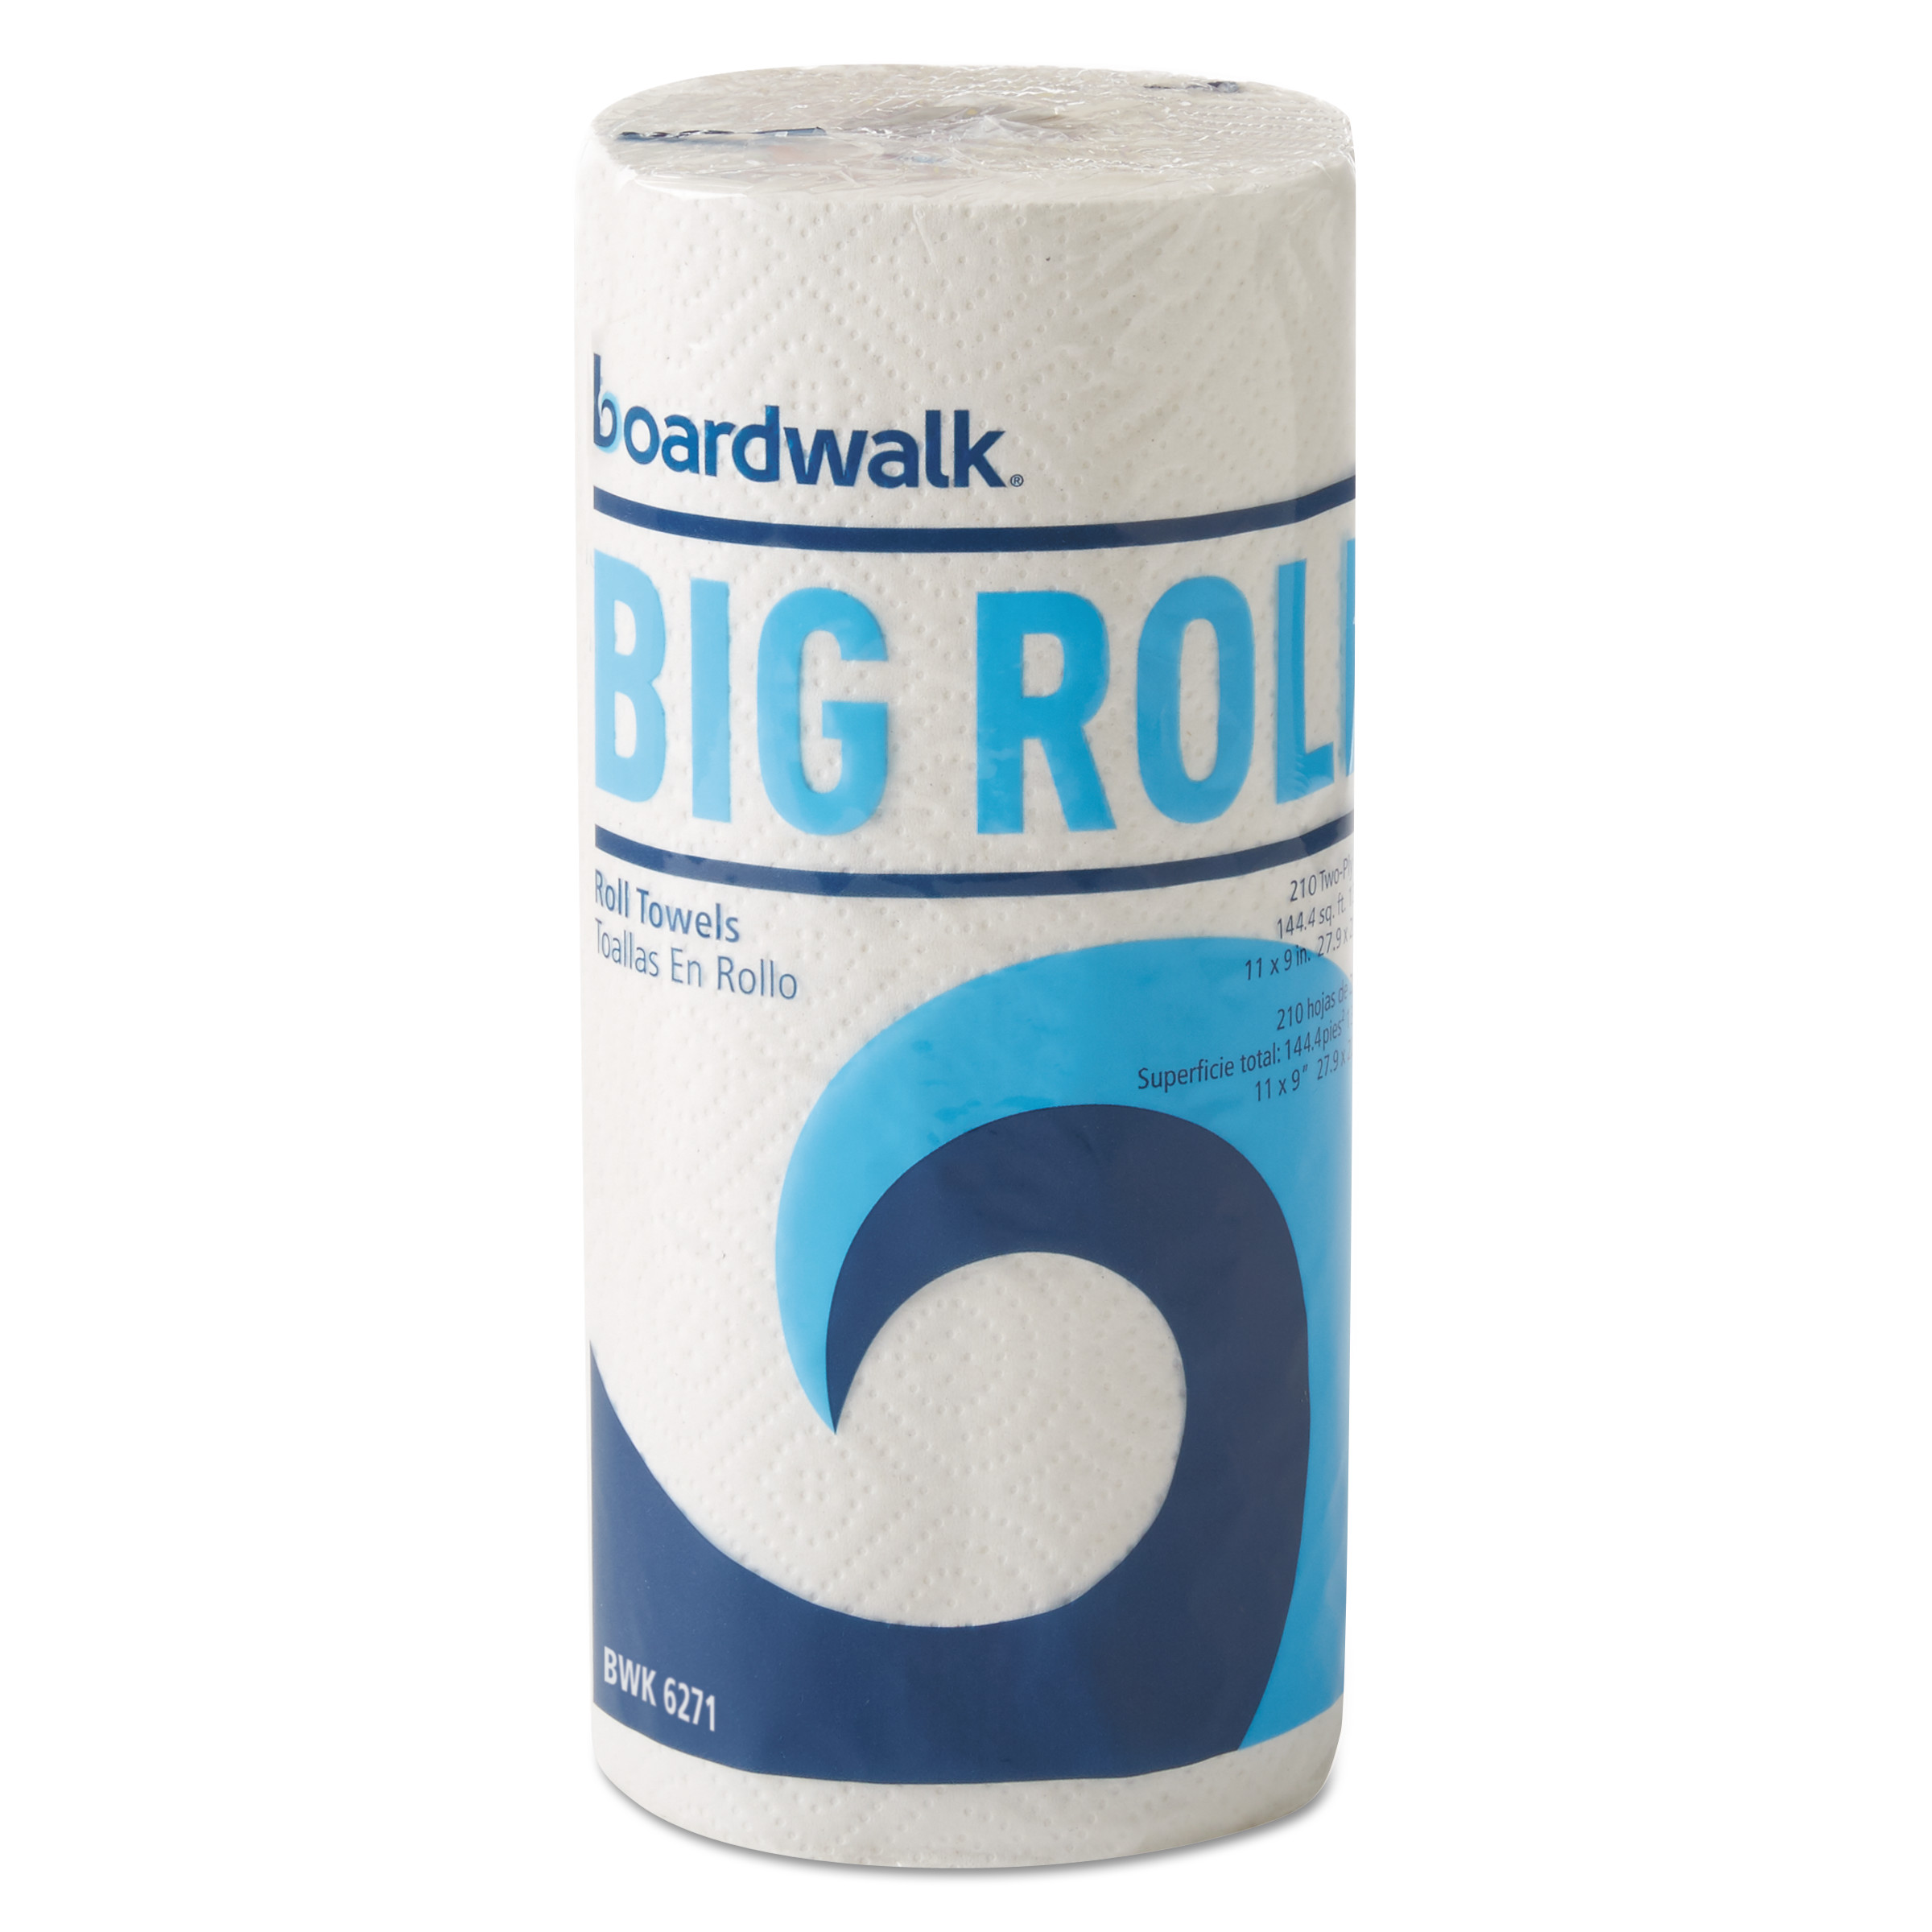 "Boardwalk Office Packs Perforated Paper Towel Rolls, 2-Ply,White, 9"" x 11"", 210/Roll,12/Ct -BWK6271"